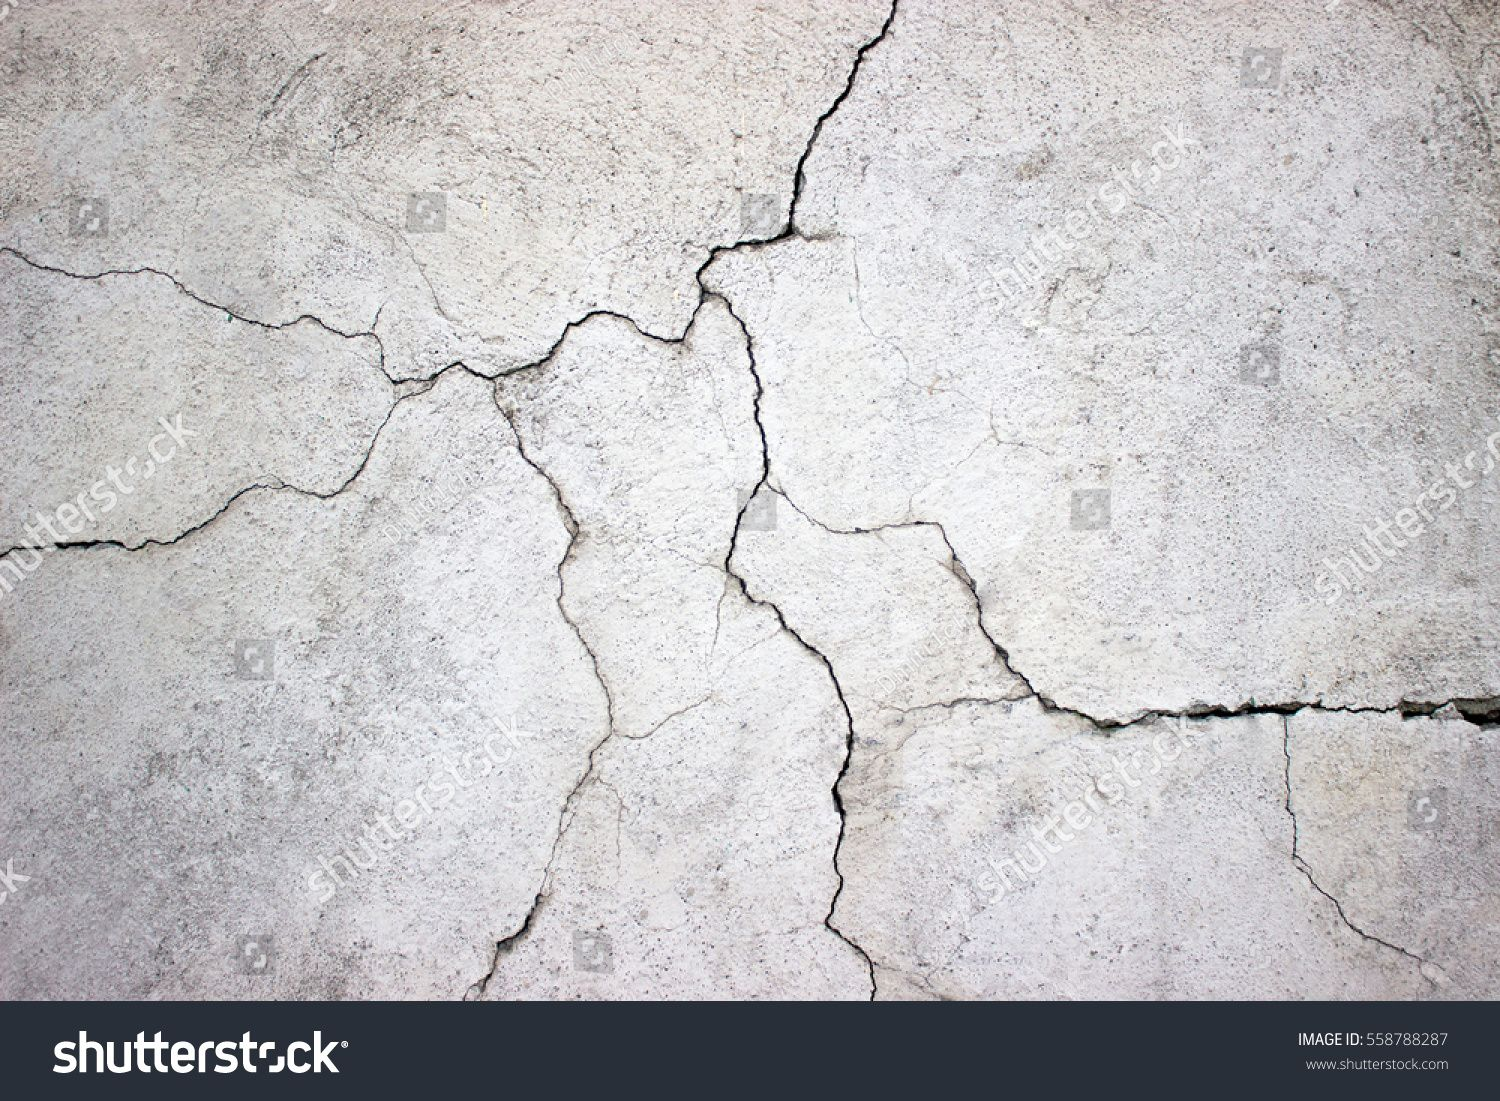 Cracked Concrete Wall Covered With Gray Cement Surface As Background Concrete Wall Covering Concrete Wall Wall Coverings